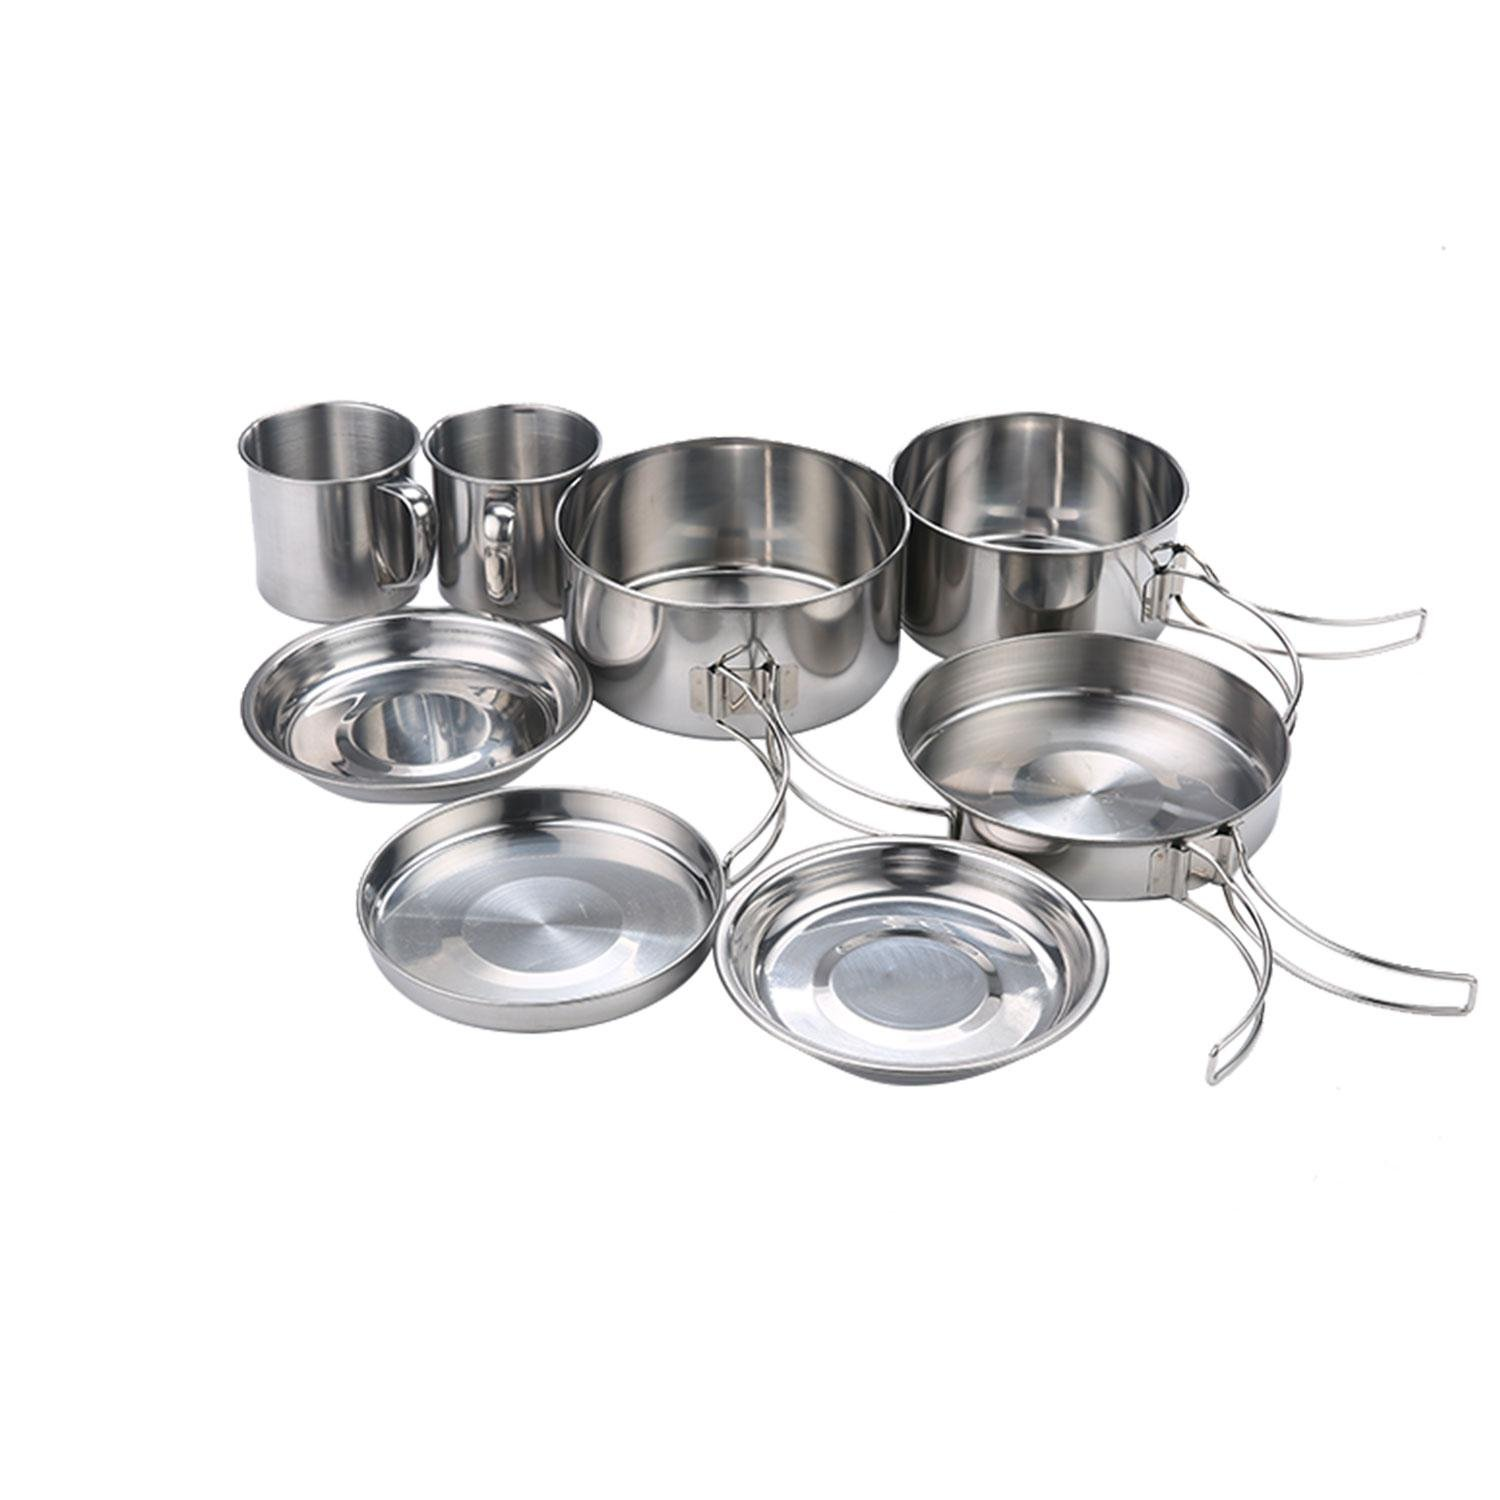 KOBWA Camping Stainless Steel Cookware Set, Picnic Hiking Camping Pots and Pans Set Cooking Mess Kit 8 Pcs - Lightweight and Durable